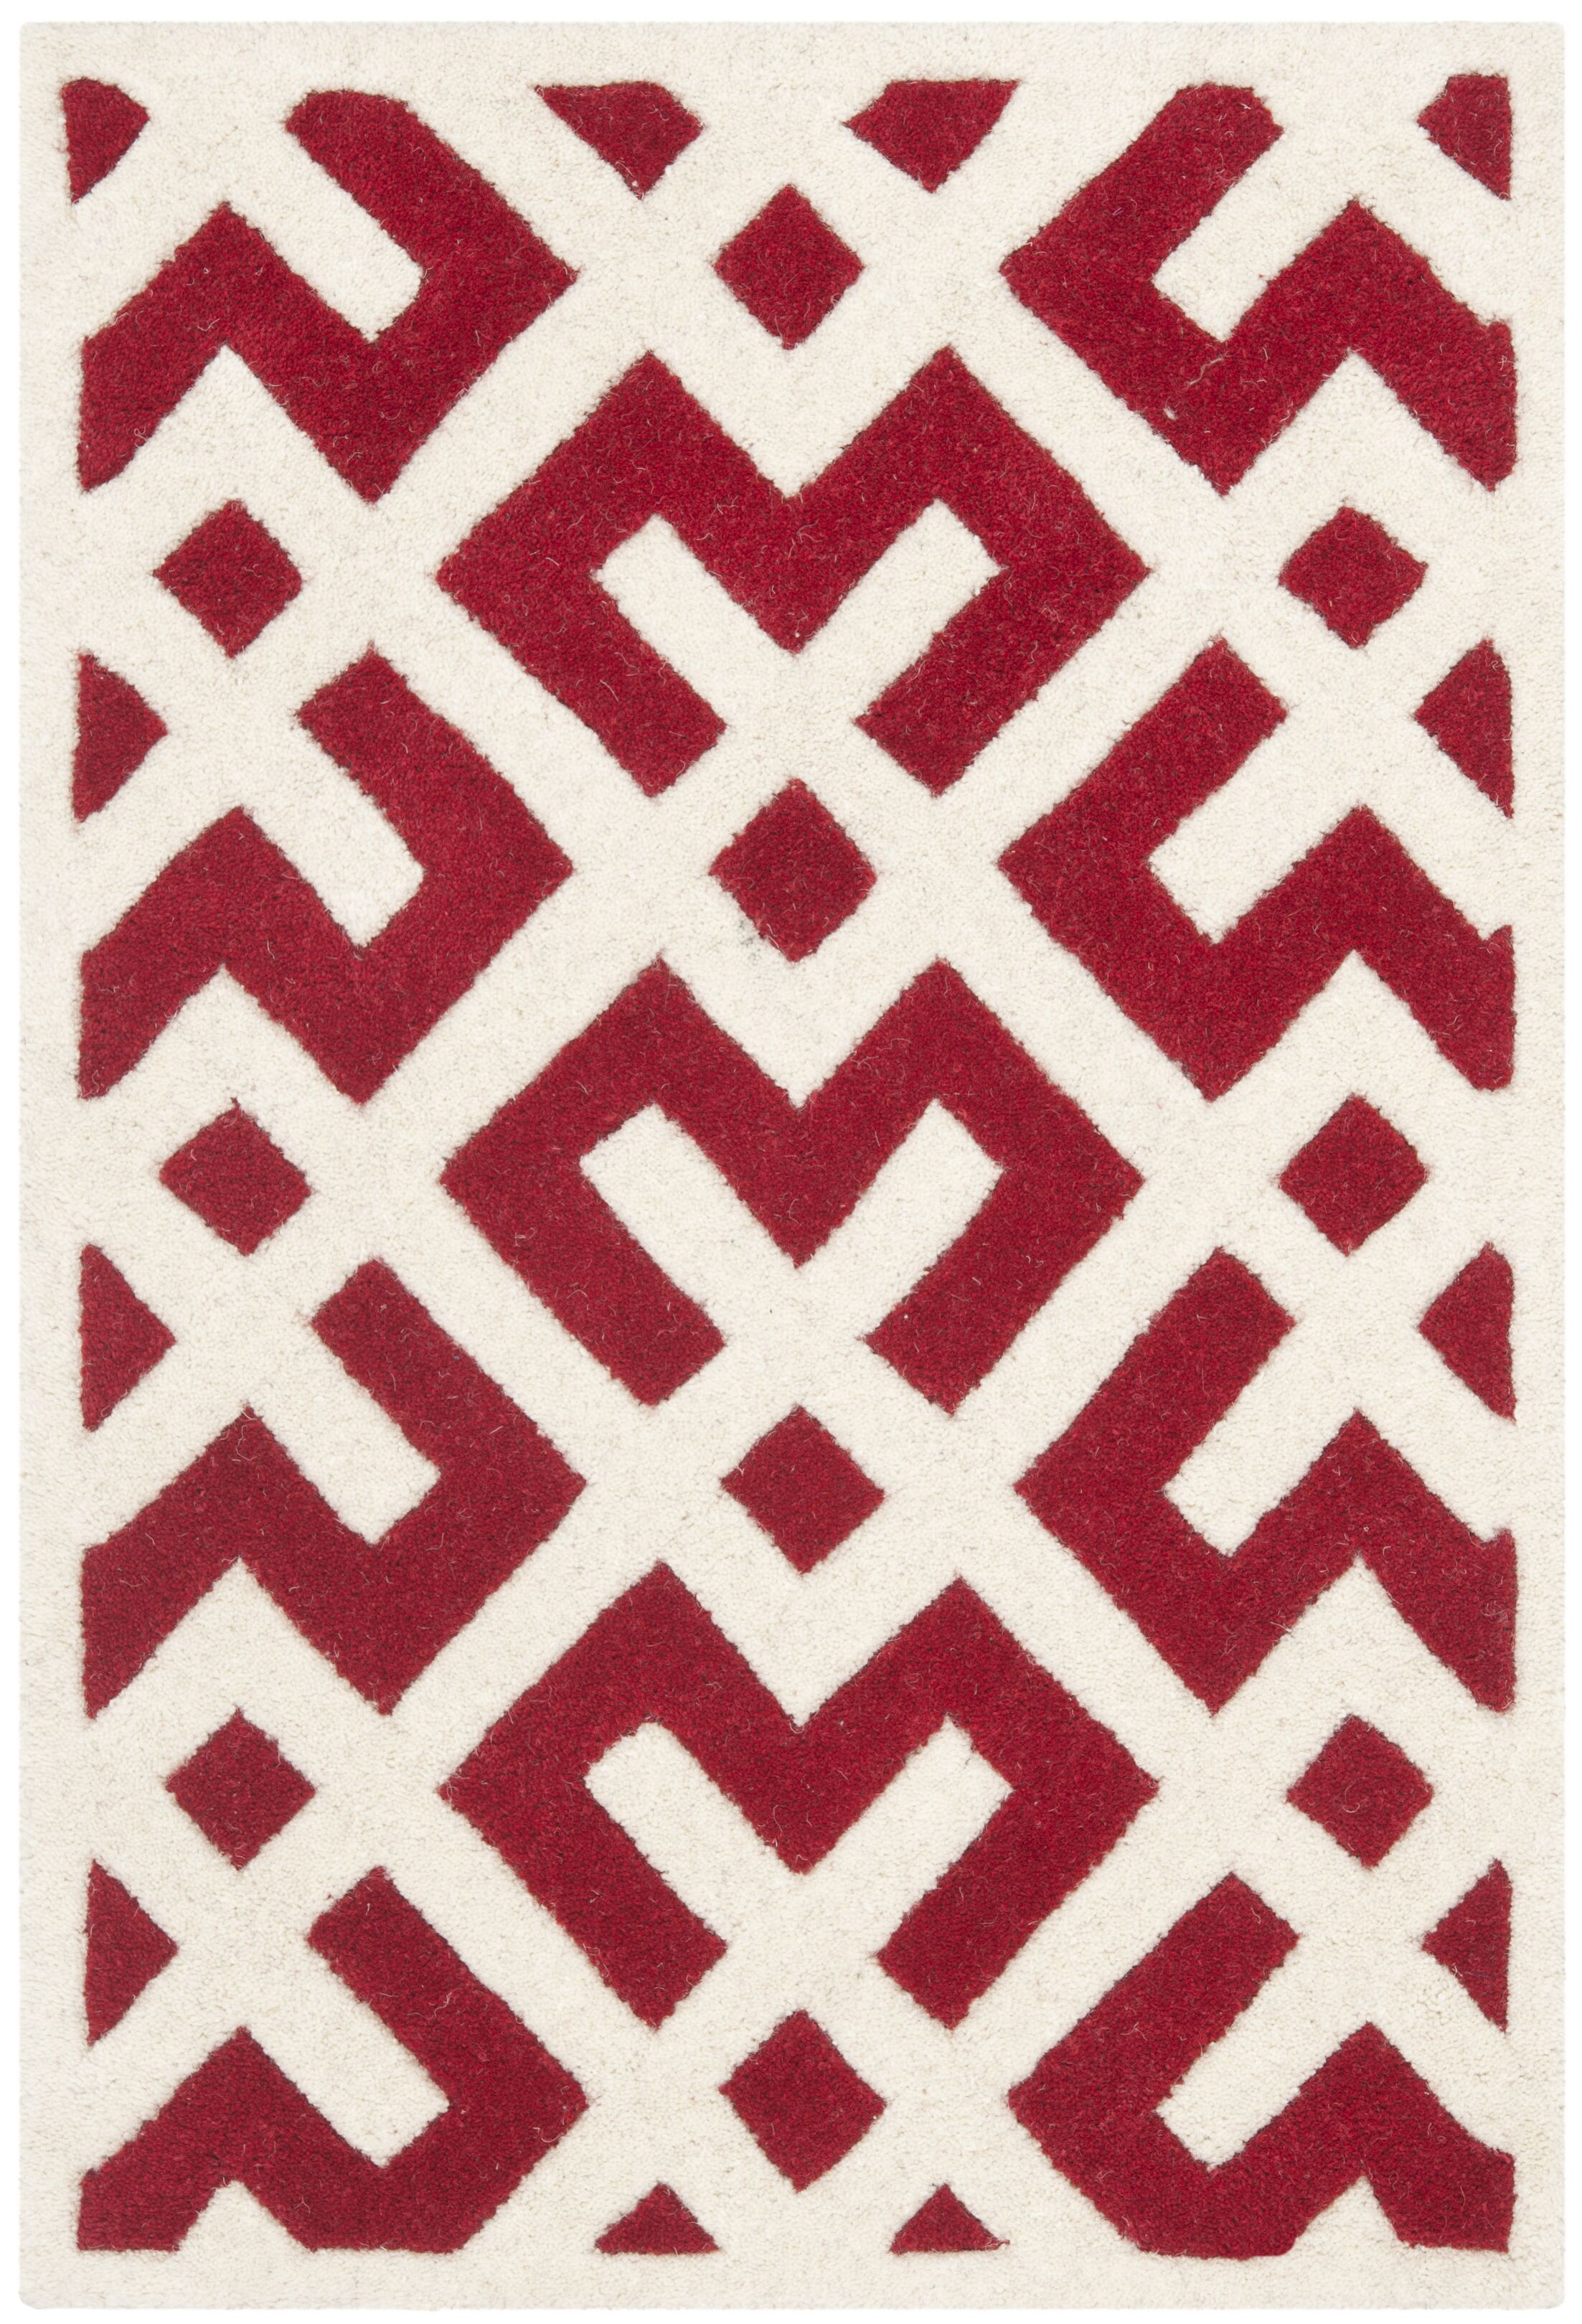 Wilkin Hand-Tufted Red/Ivory Area Rug Rug Size: Rectangle 8' x 10'